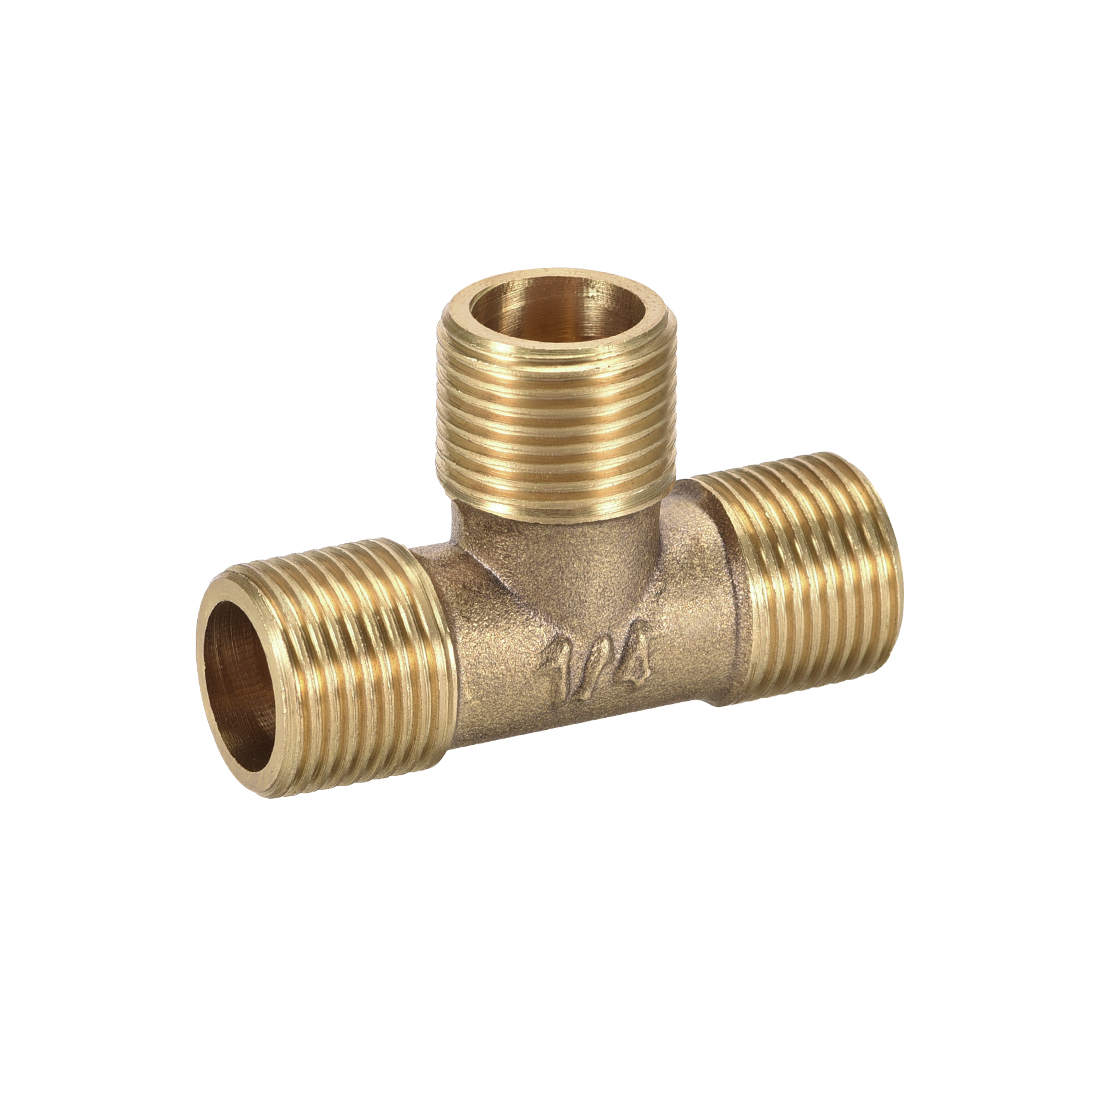 Brass Tee Pipe Fitting 3/8BSP Male Thread T Shaped Connector Coupler